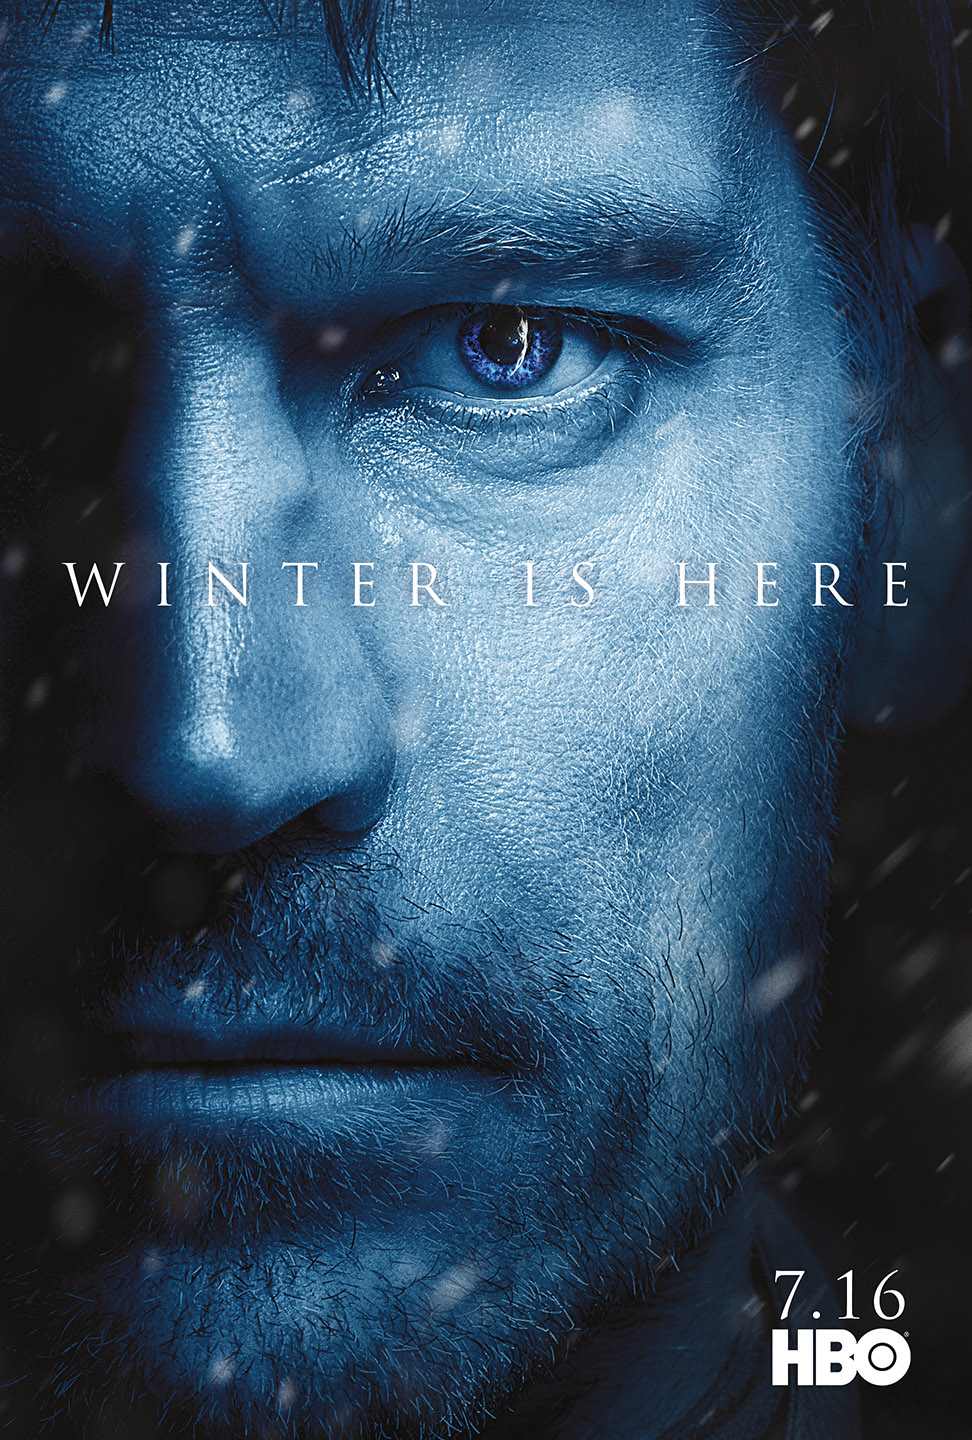 Character Posters For Game Of Thrones Season 7 Revealed Winter Is